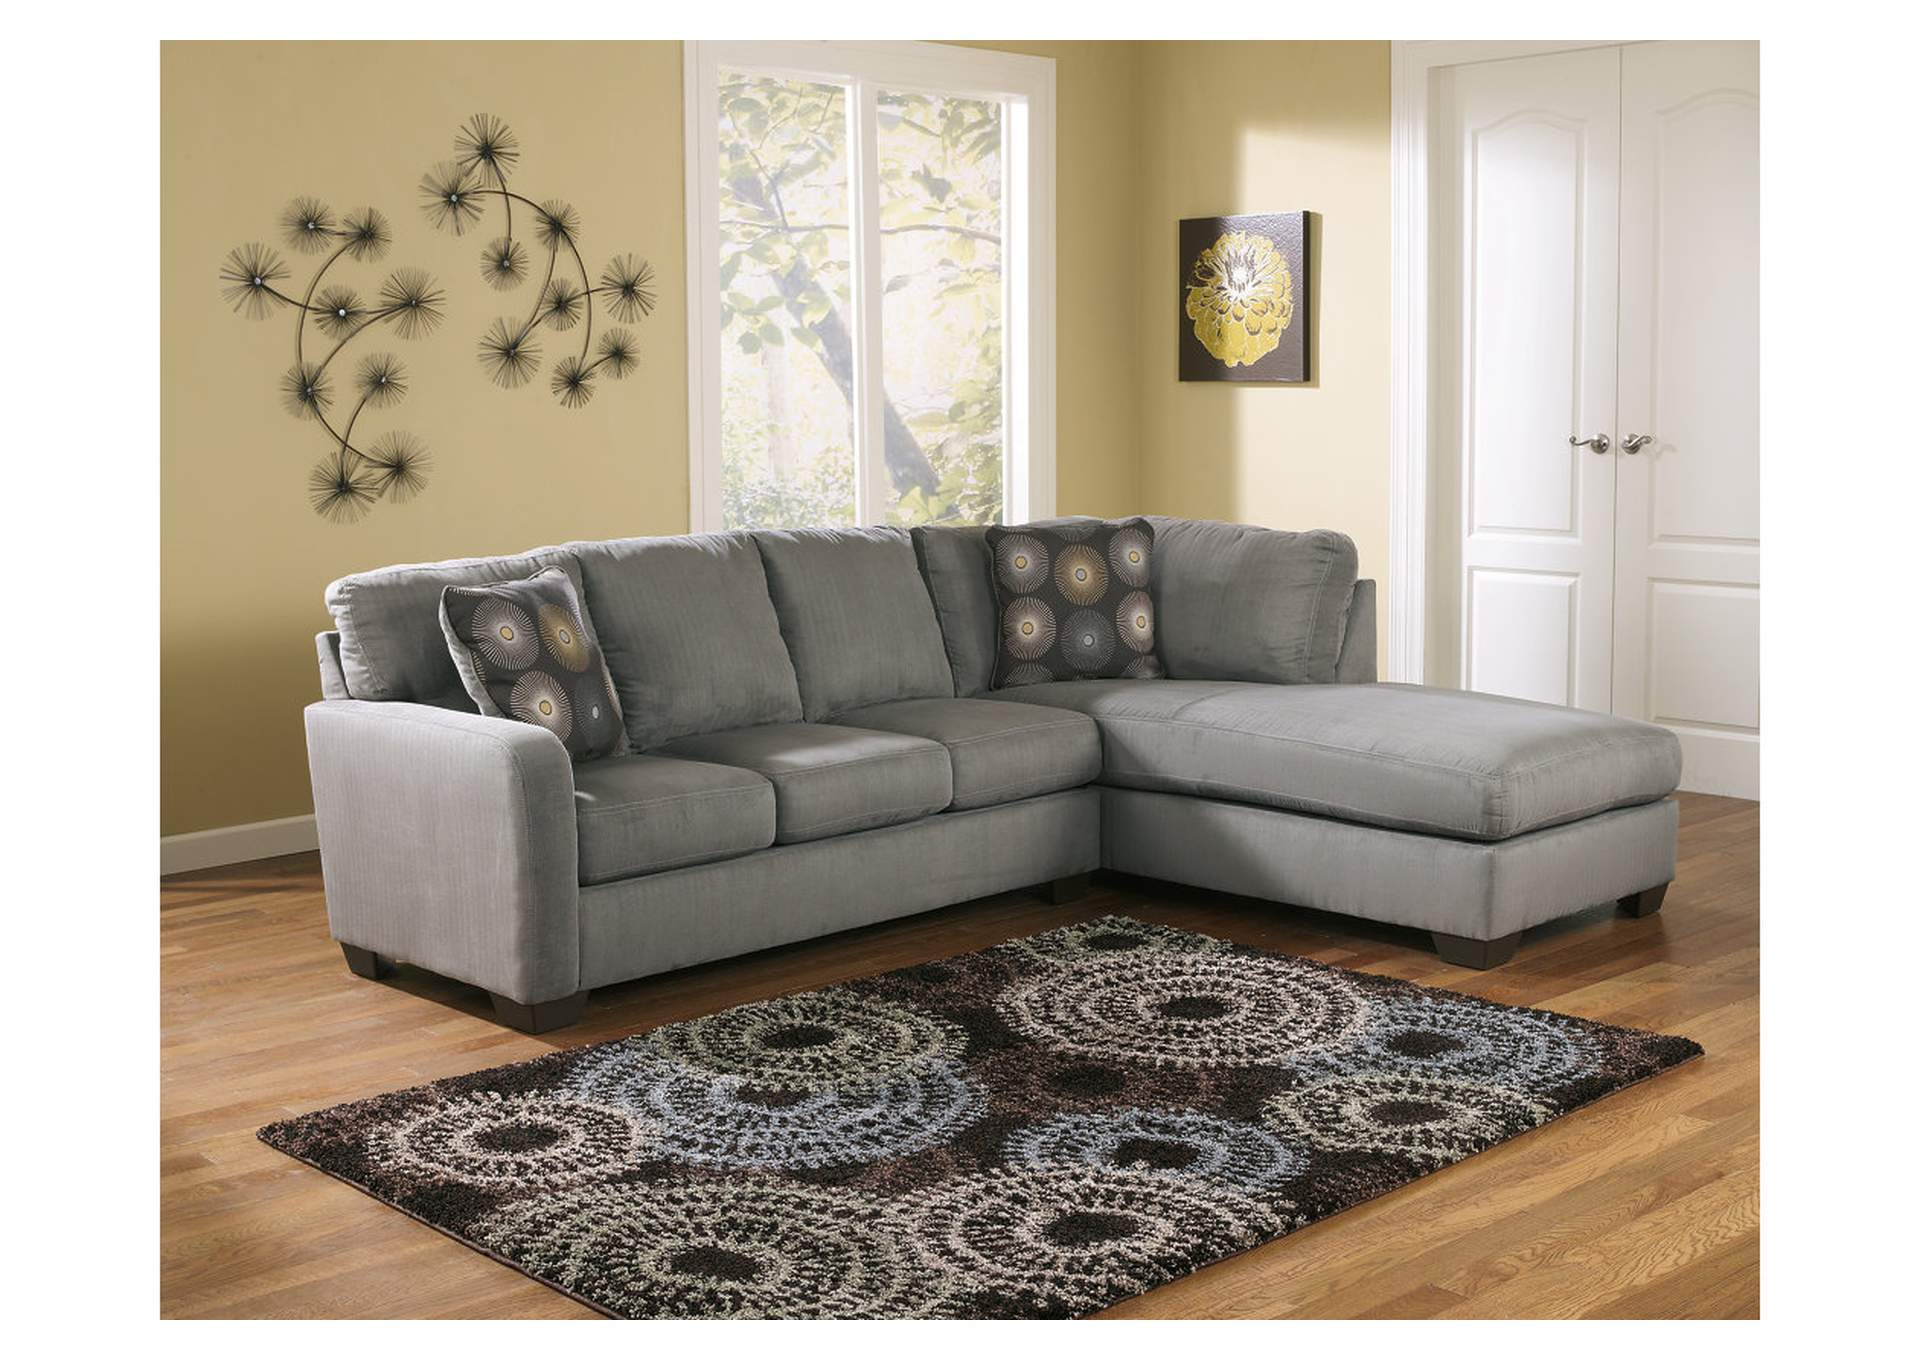 Zella Charcoal Right Facing Chaise Sectional,Signature Design By Ashley